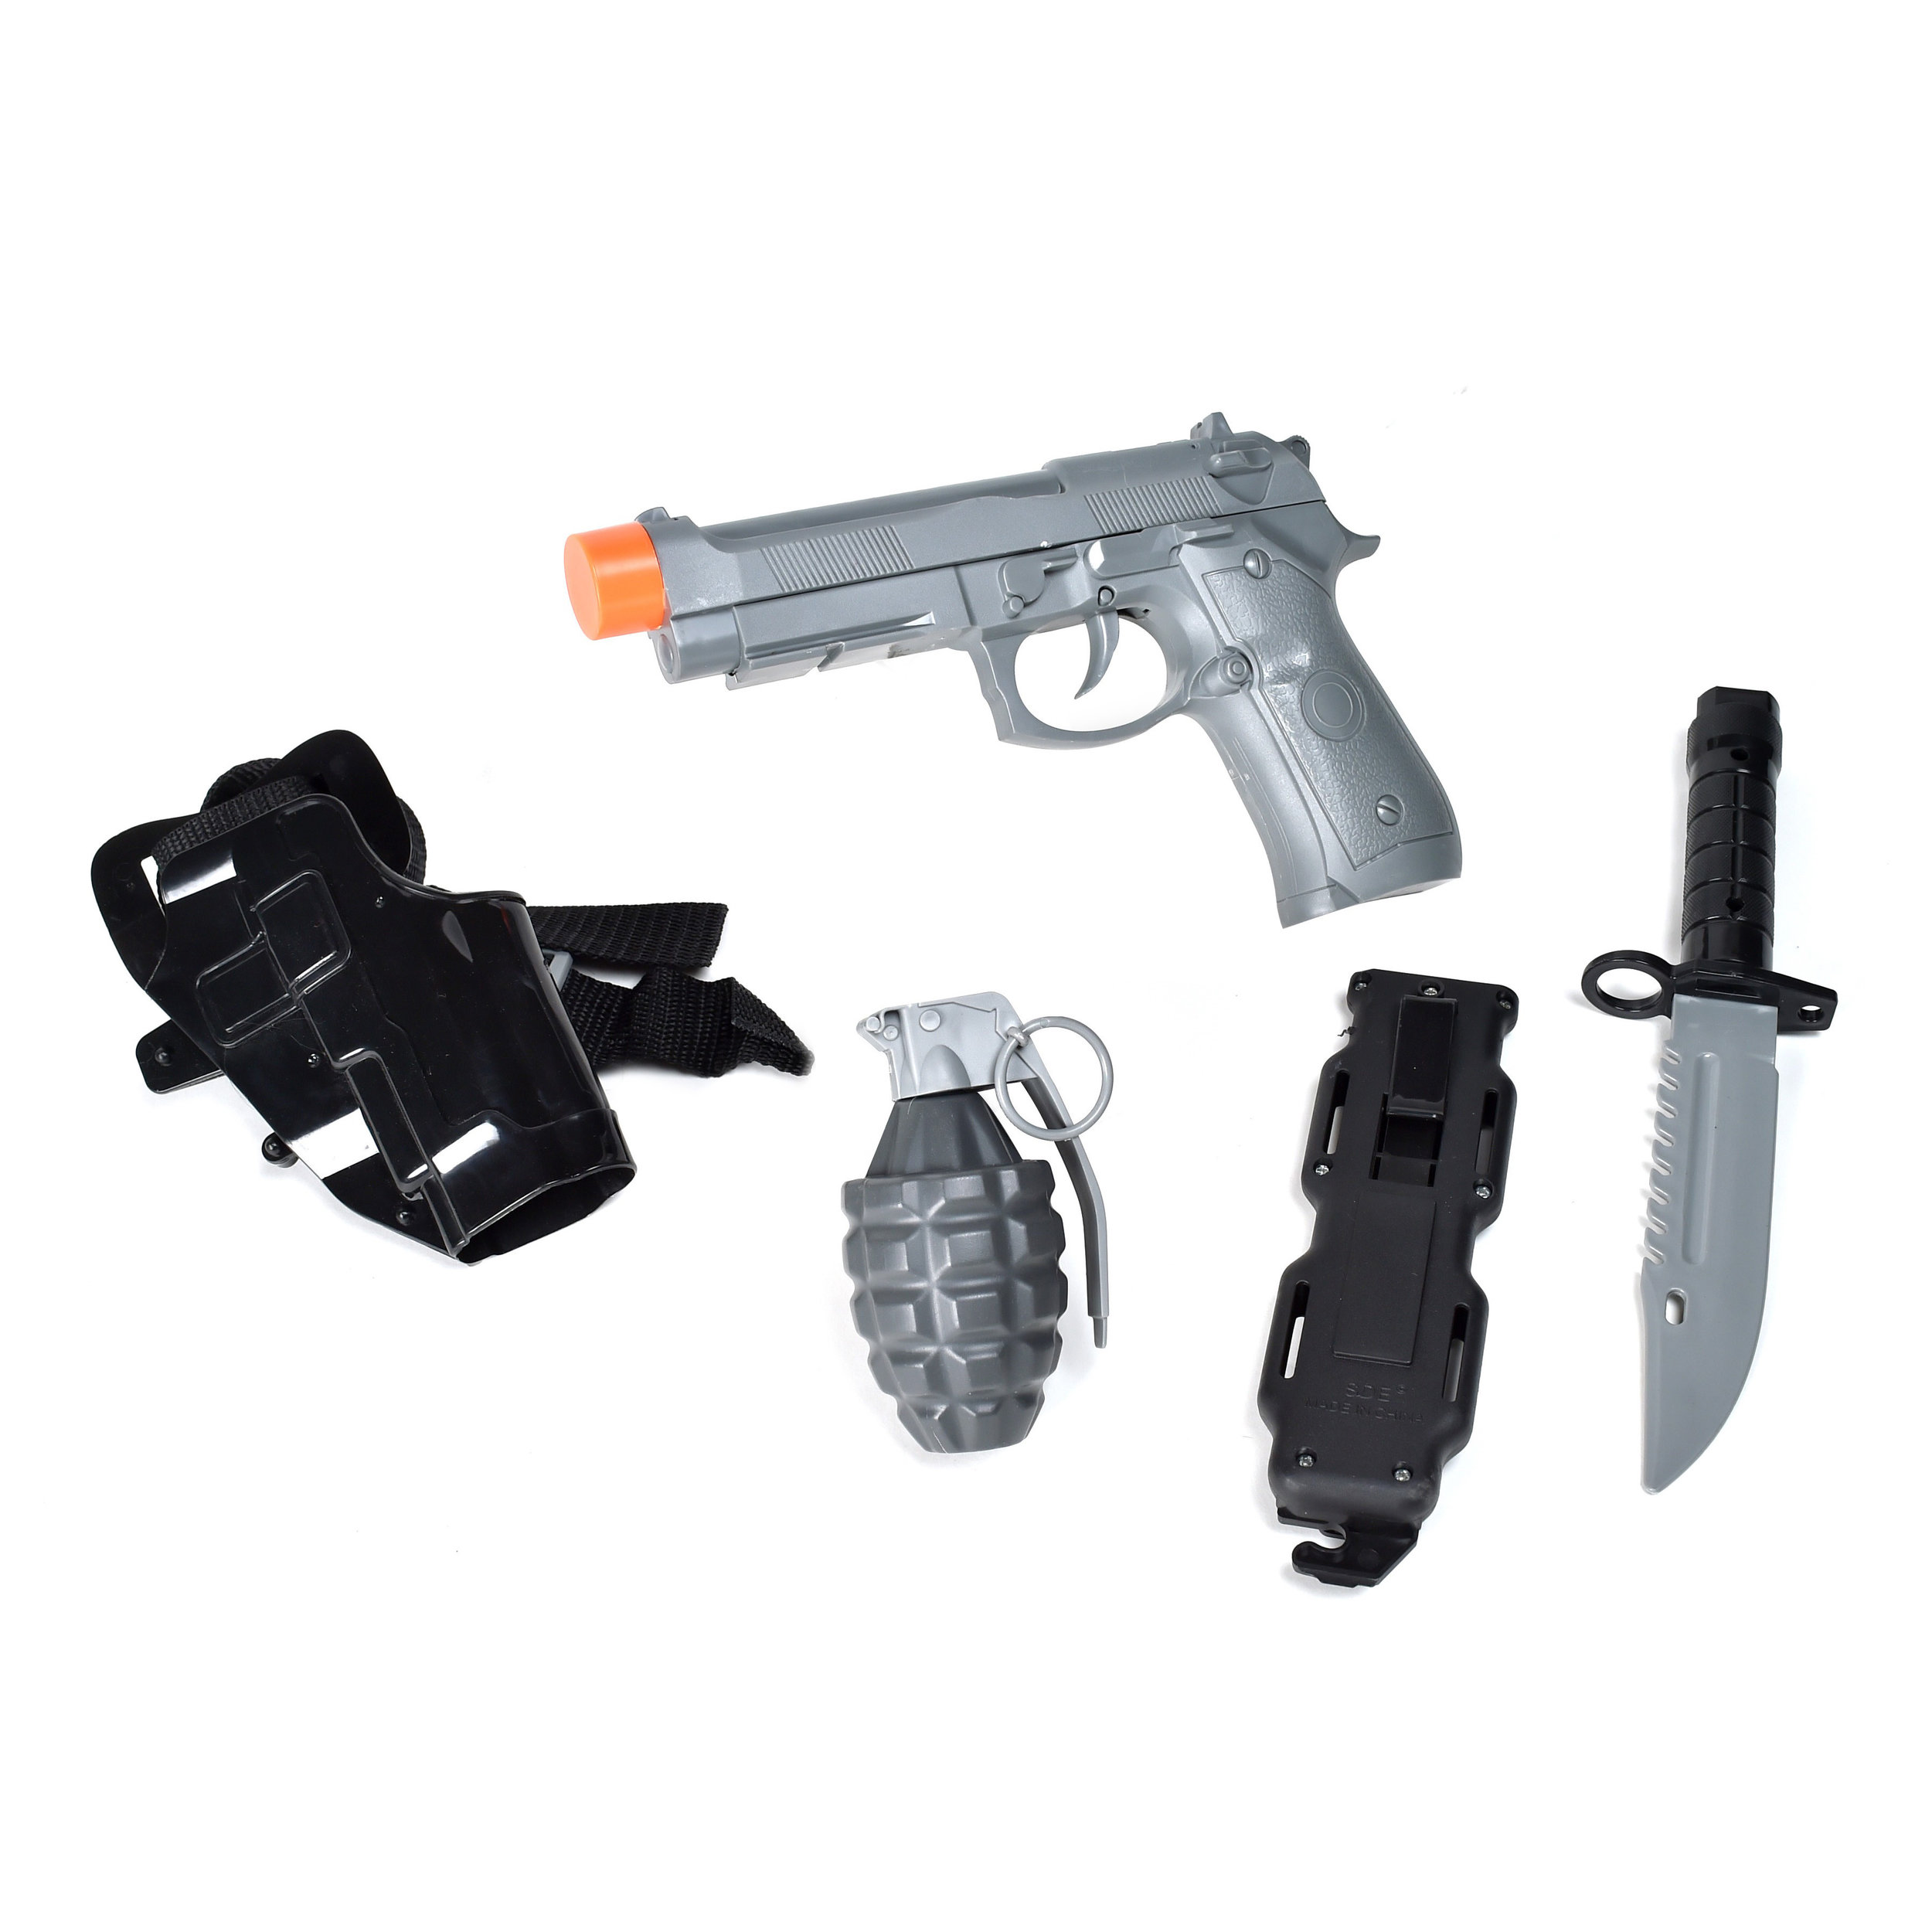 Maxx Action Pistol Playset